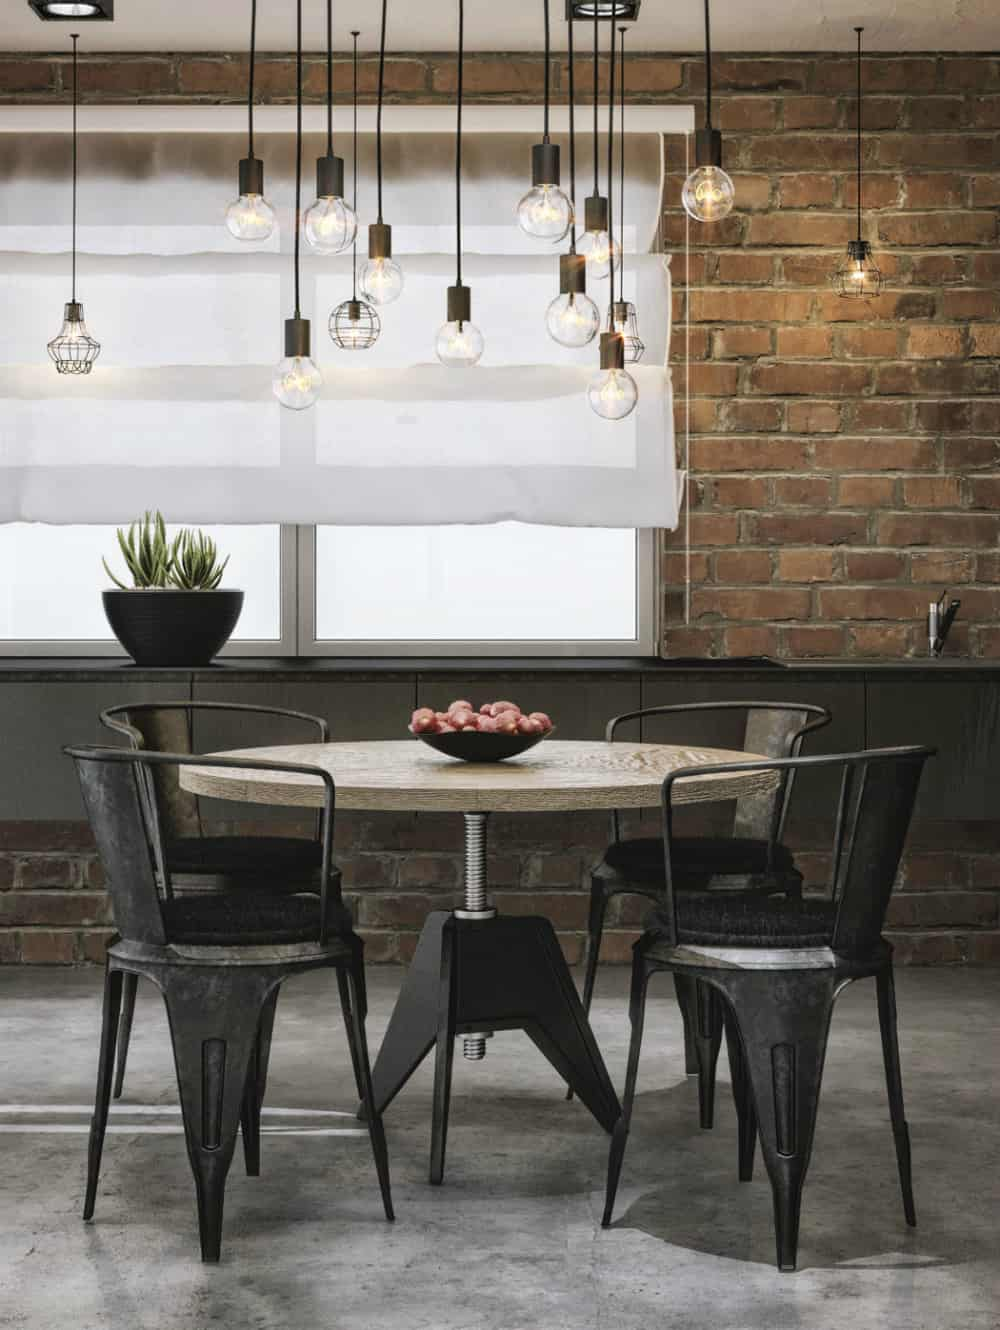 Adjustable dining table with industrial metallic chairs